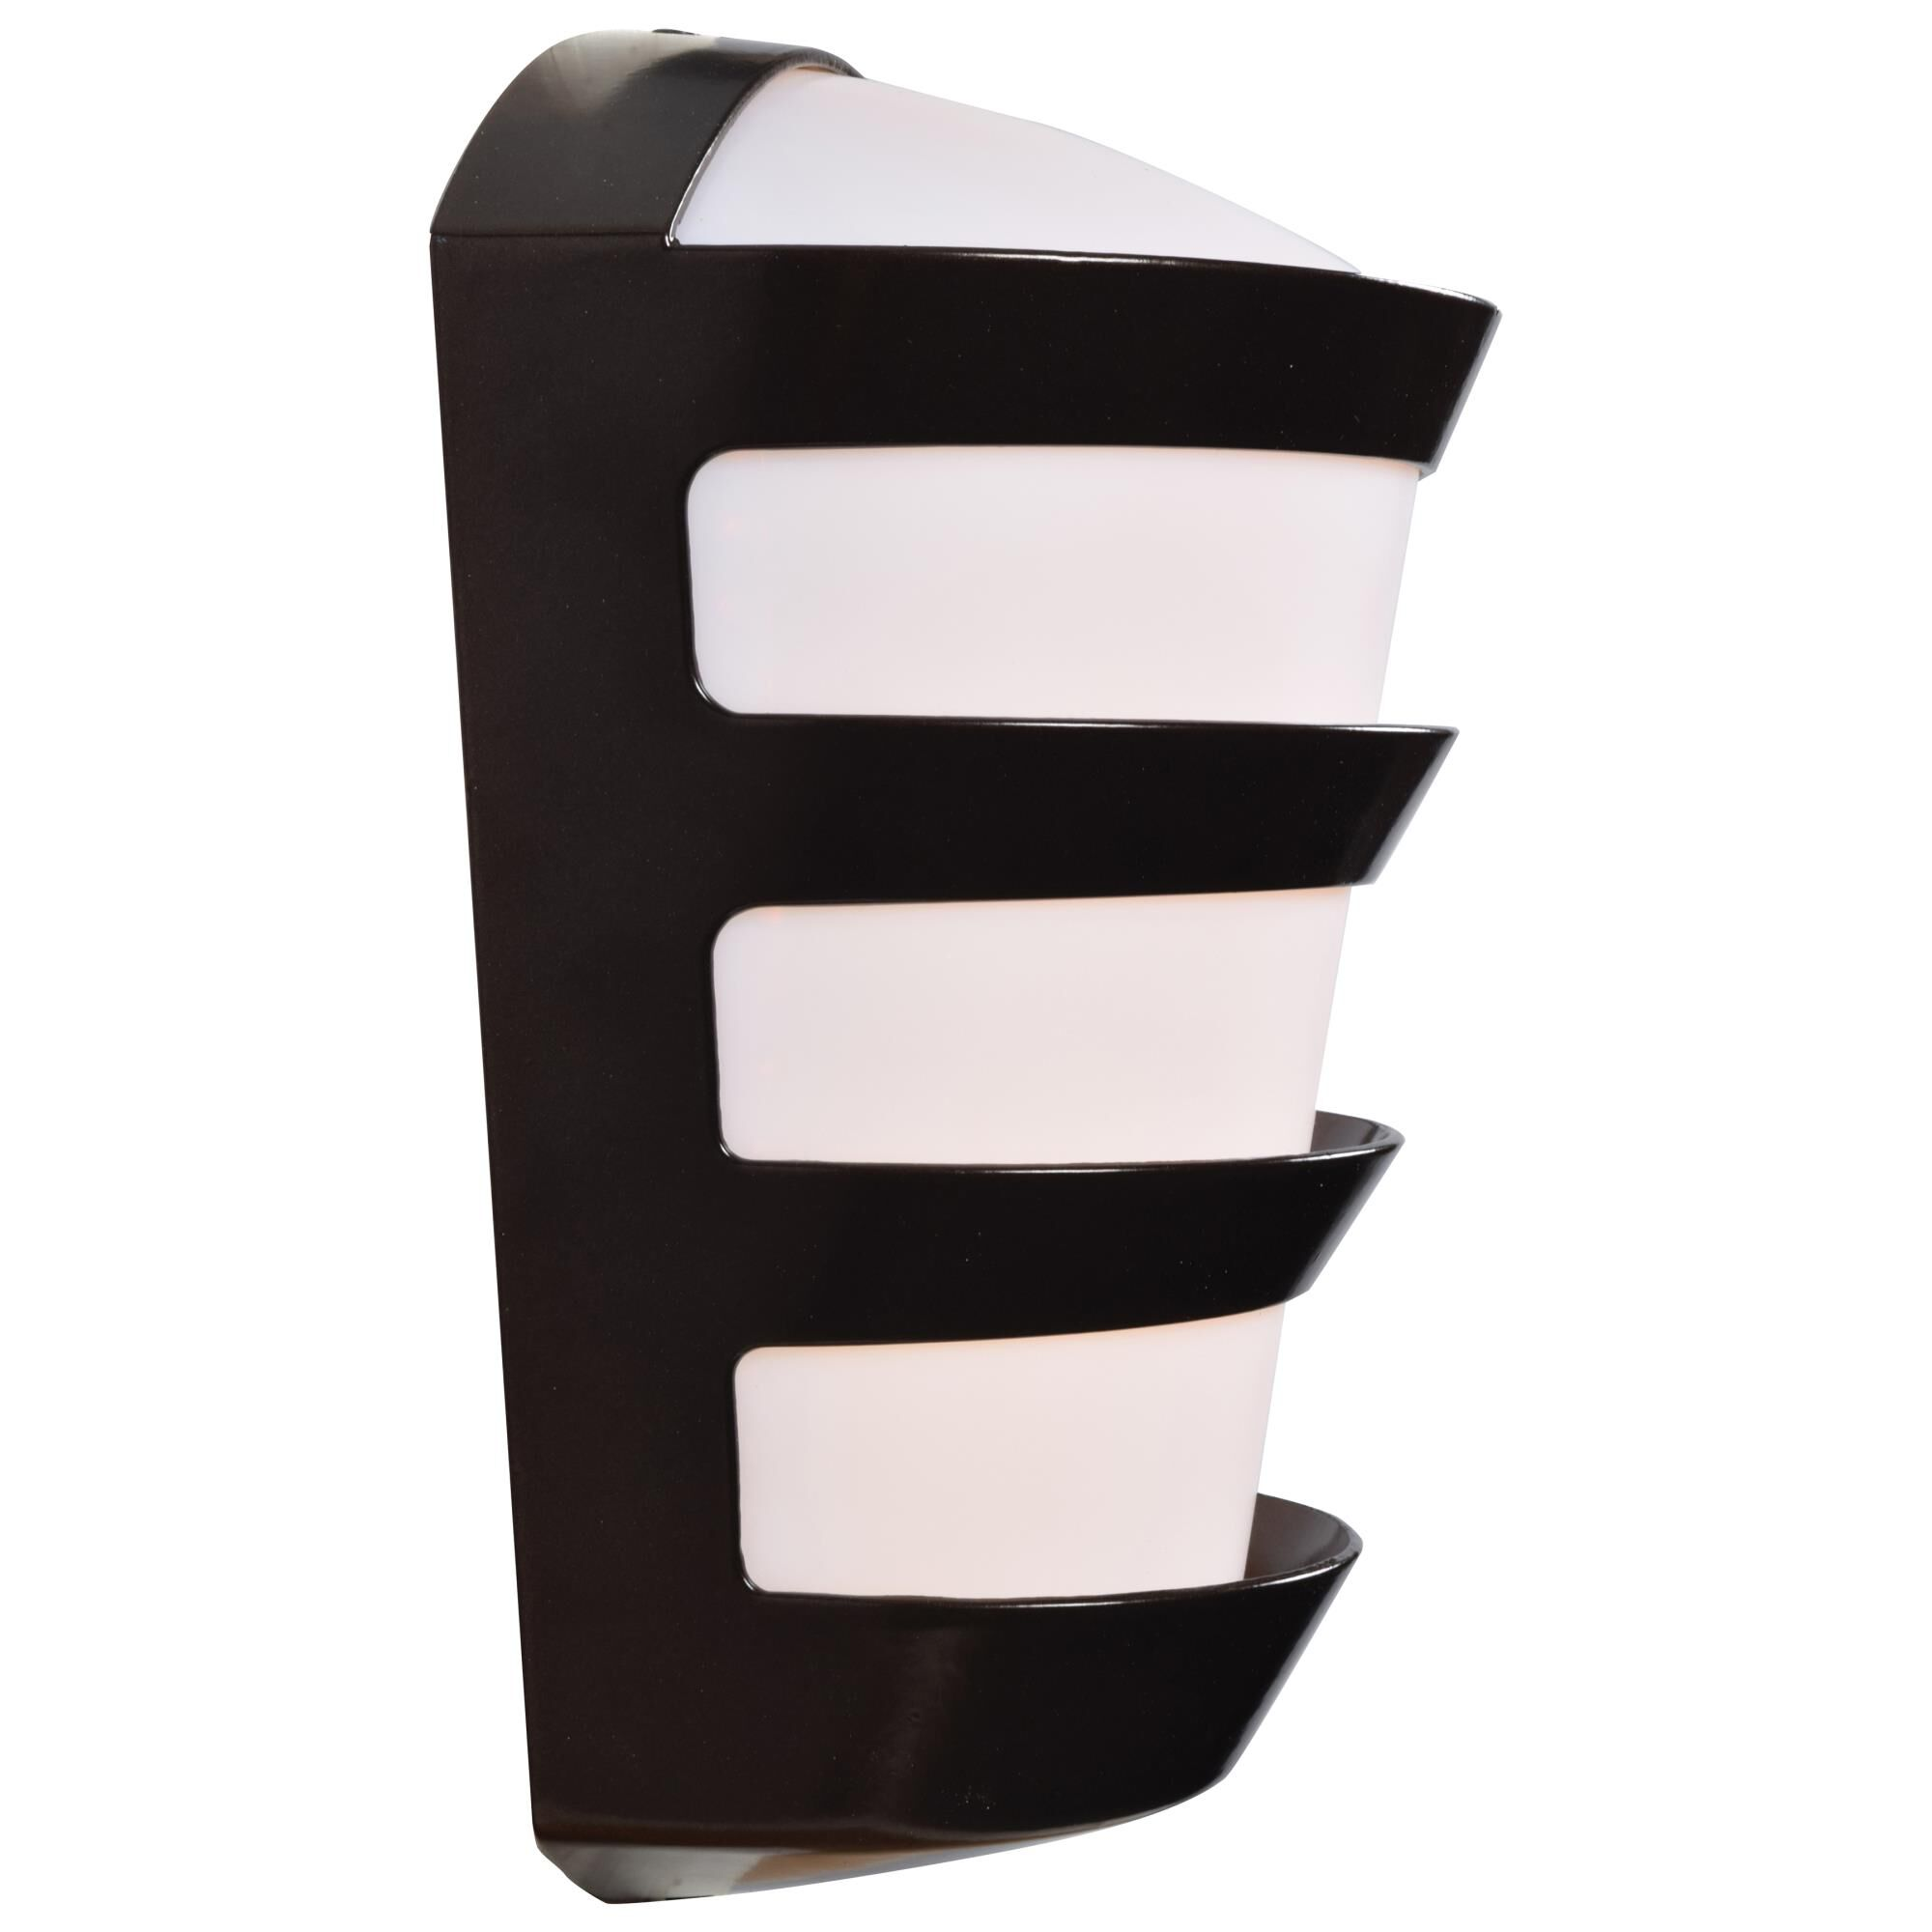 Access Lighting Band 11 Inch Tall 1 Light LED Outdoor Wall Light Band 23007LEDDMG BRZACR Modern Contemporary